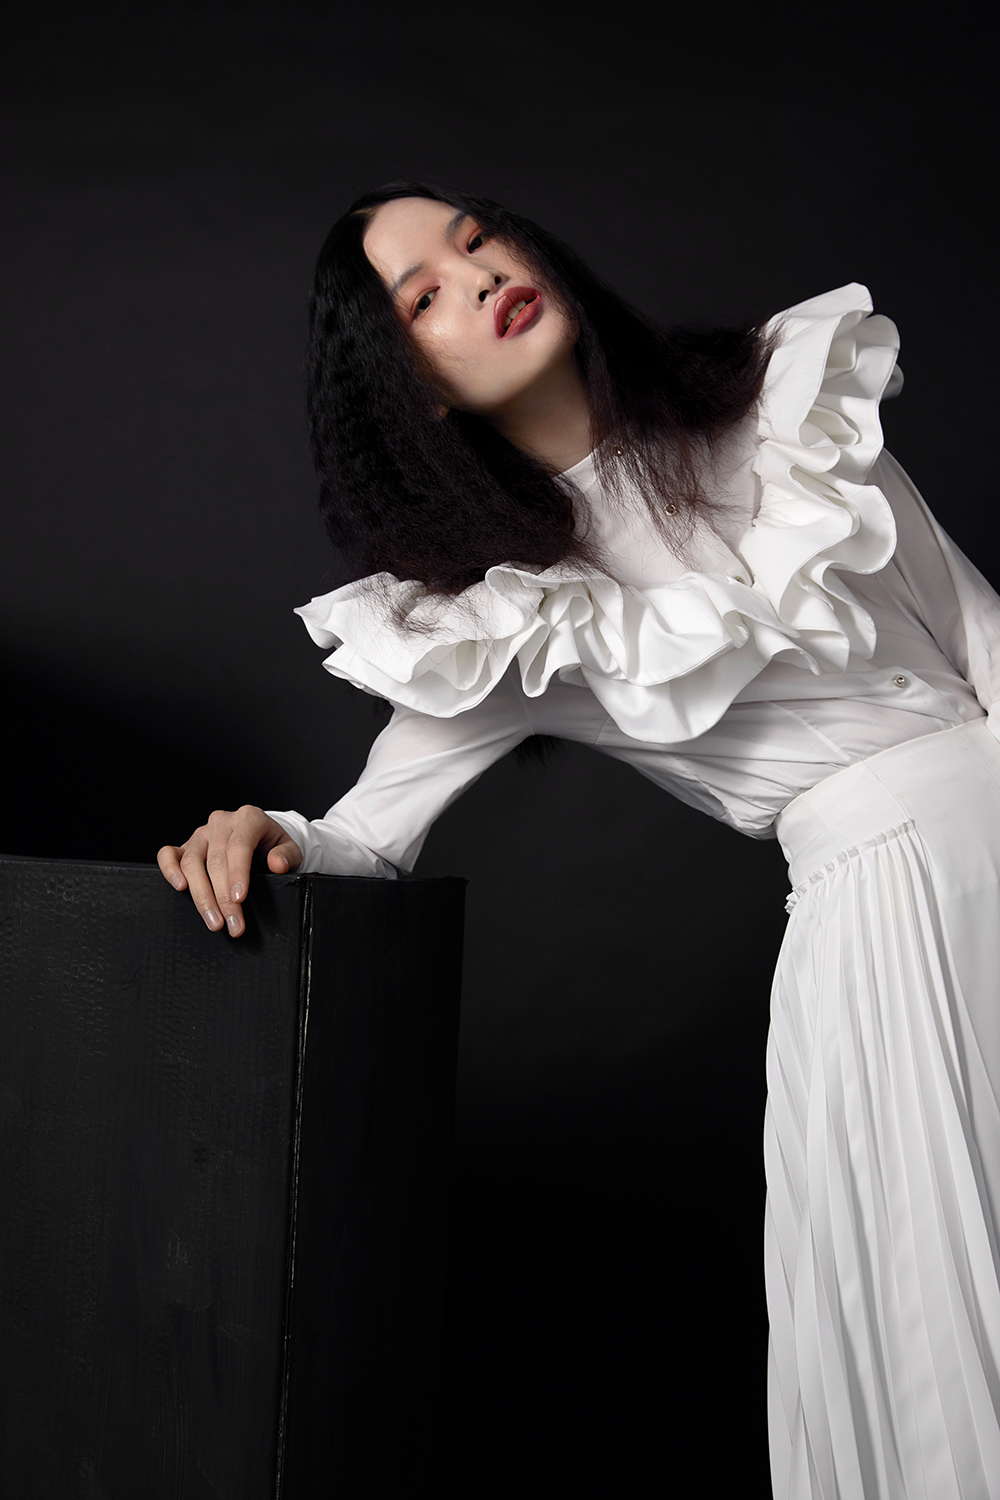 Blouse by See by Chloe  Flairs by Malan Breton